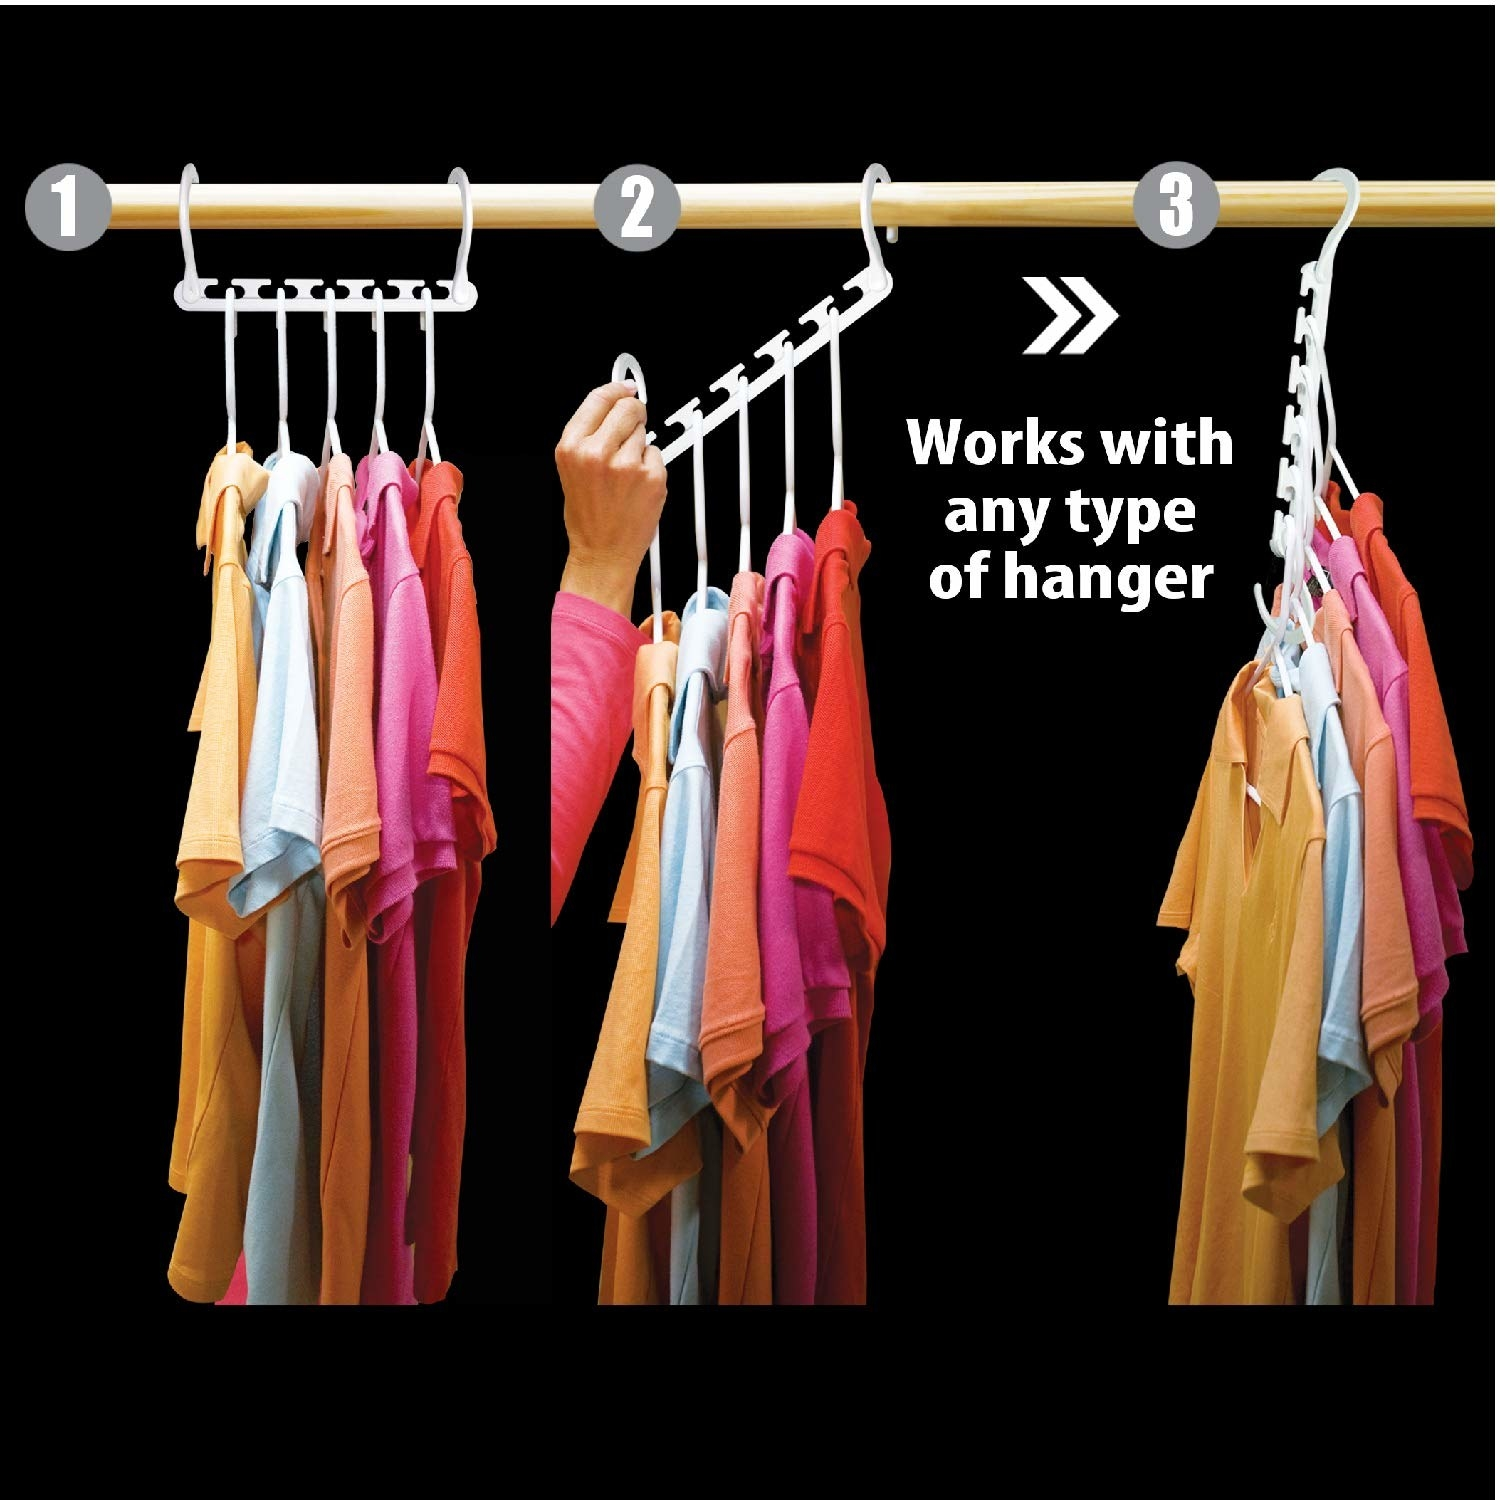 An image showing the steps how it hangs five hangers (any kind!) from the one wonder hanger